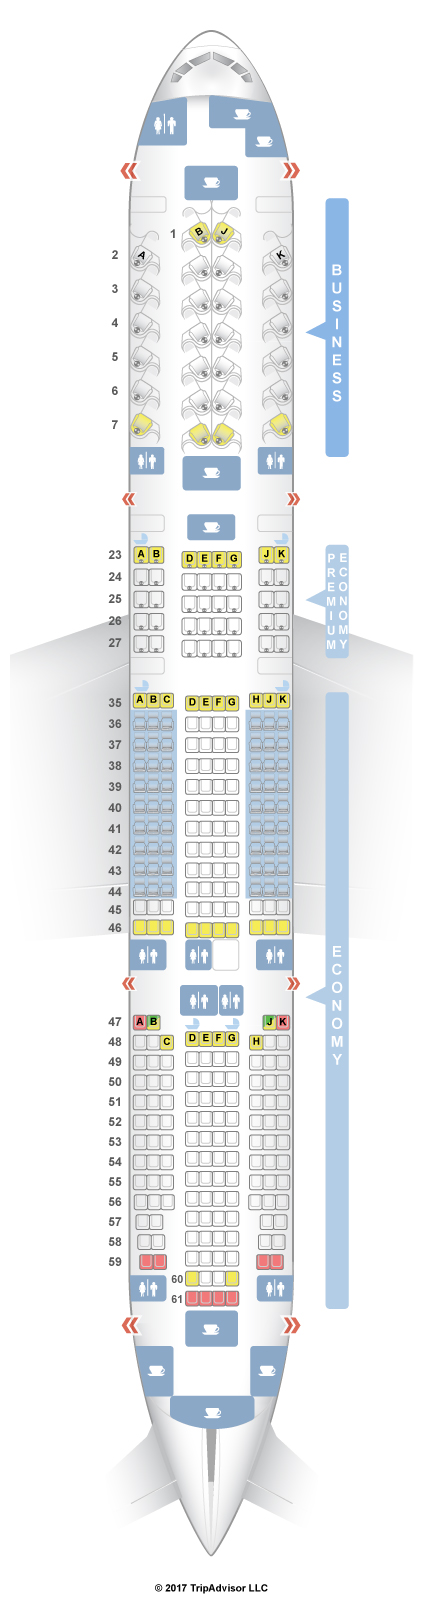 19 Elegant Cathay Pacific Seating Chart 77w